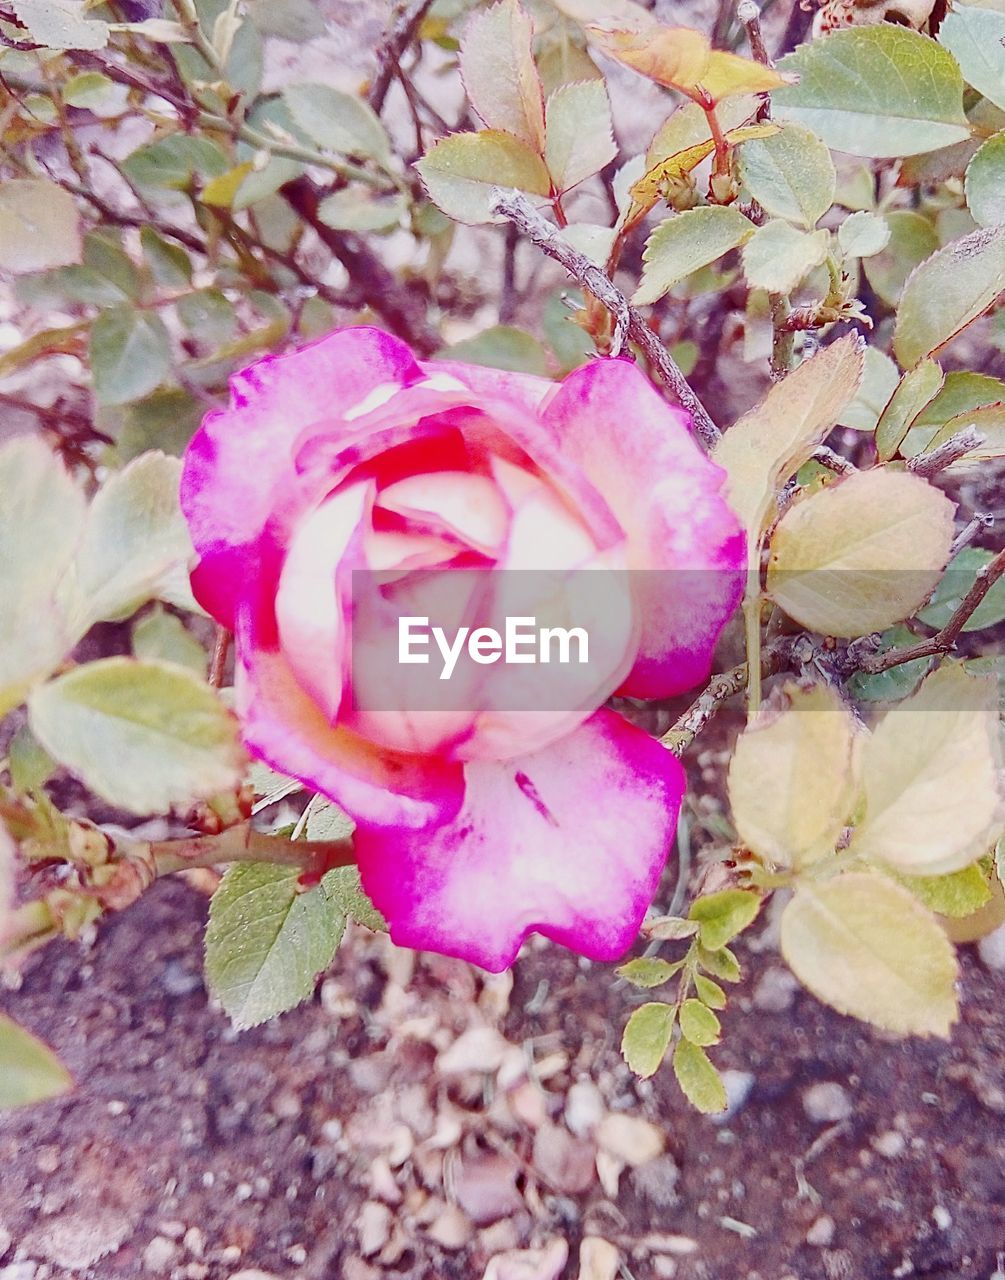 plant, pink color, beauty in nature, flower, close-up, flowering plant, freshness, growth, petal, vulnerability, nature, no people, fragility, day, plant part, leaf, outdoors, inflorescence, selective focus, botany, flower head, springtime